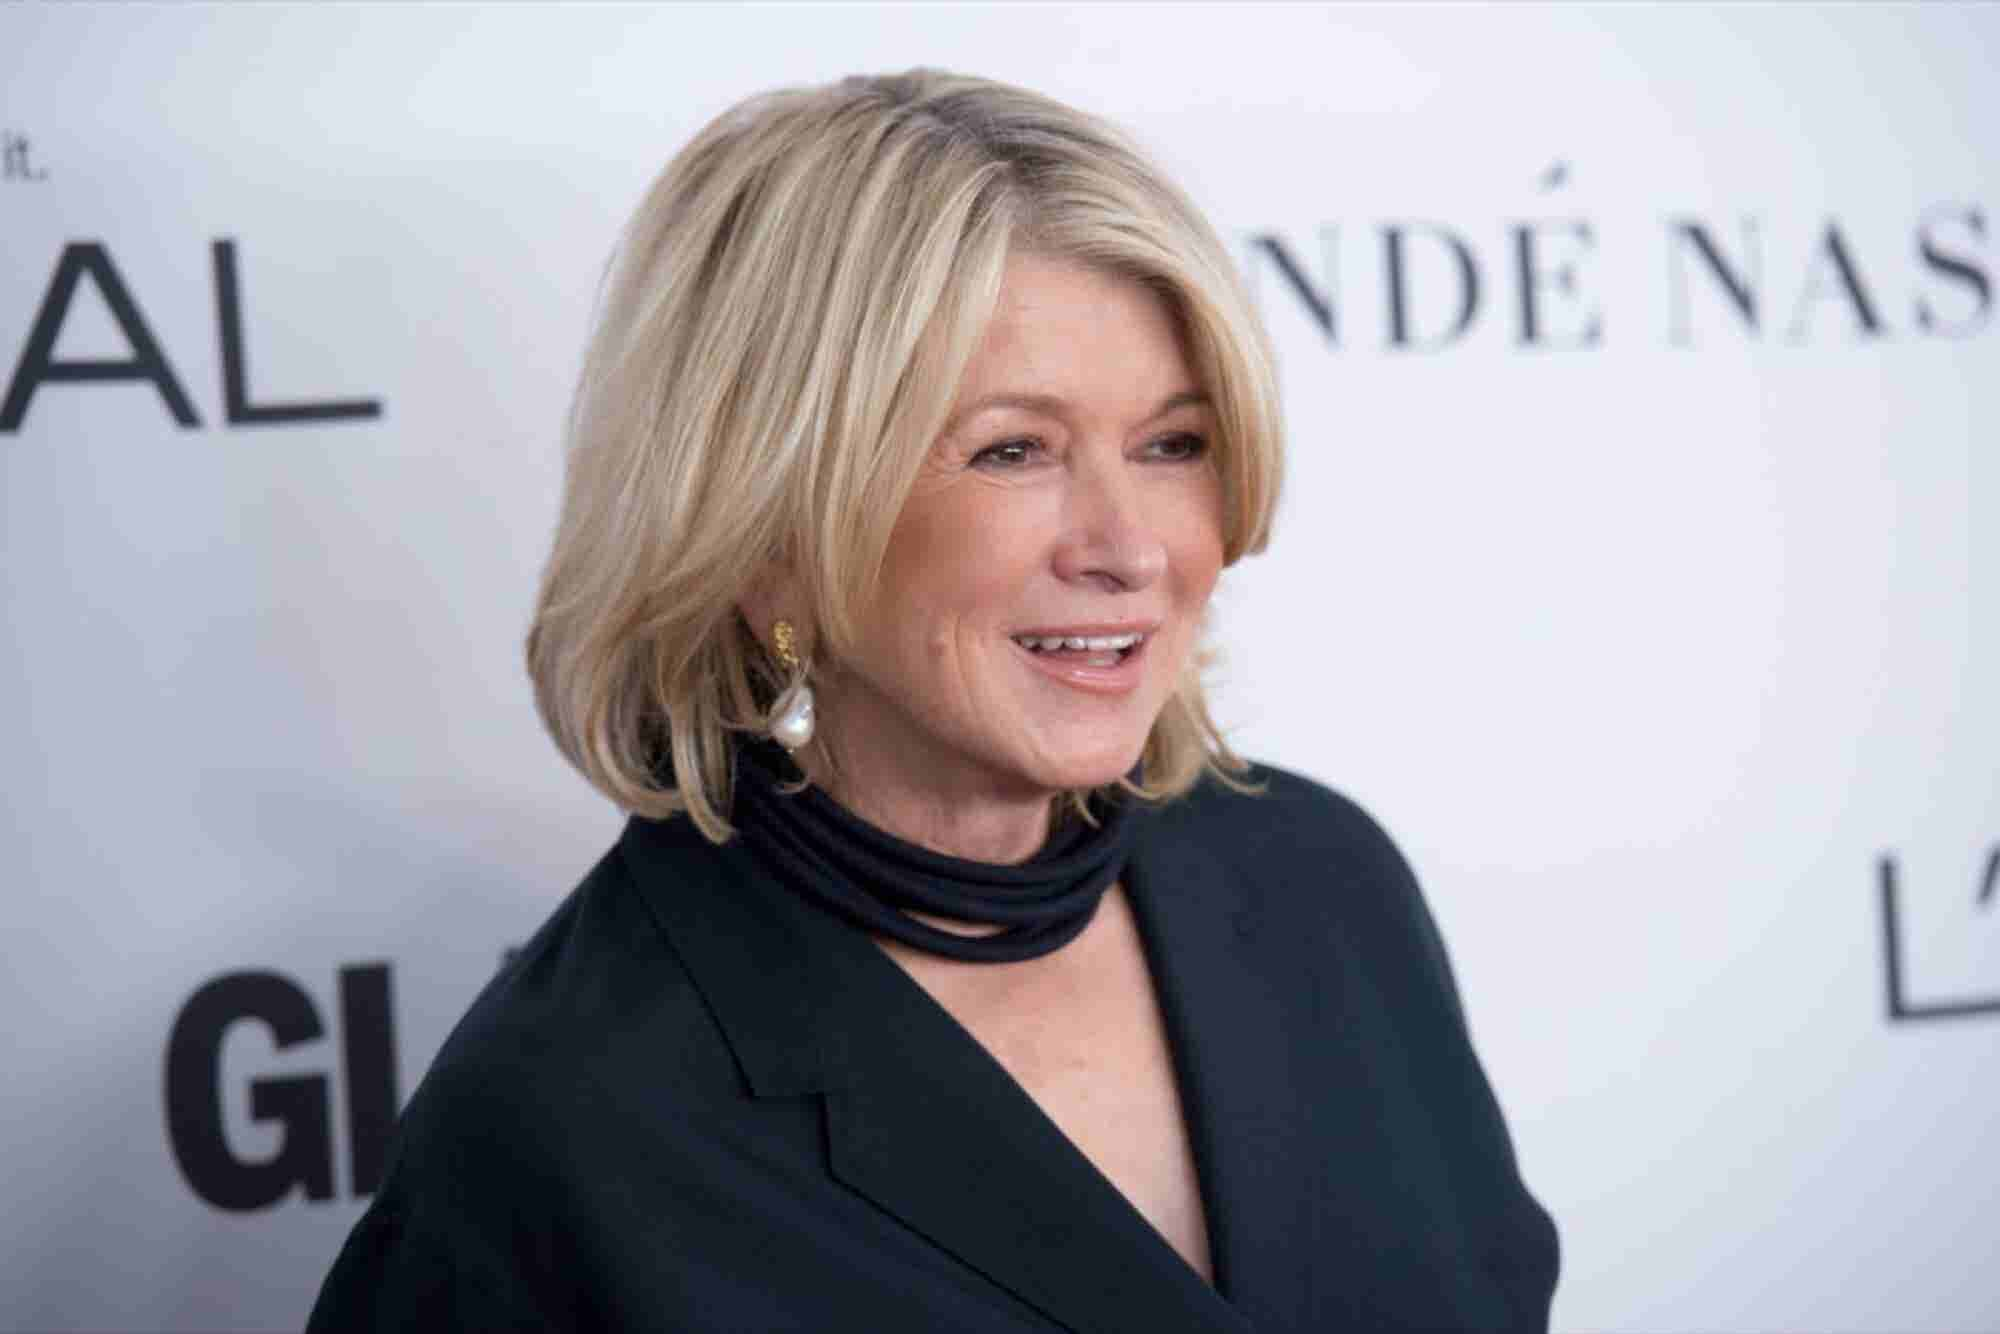 Martha Stewart's Empire Was Actually Her Third Career: How Curiosity and Optimism Have Helped Her Evolve